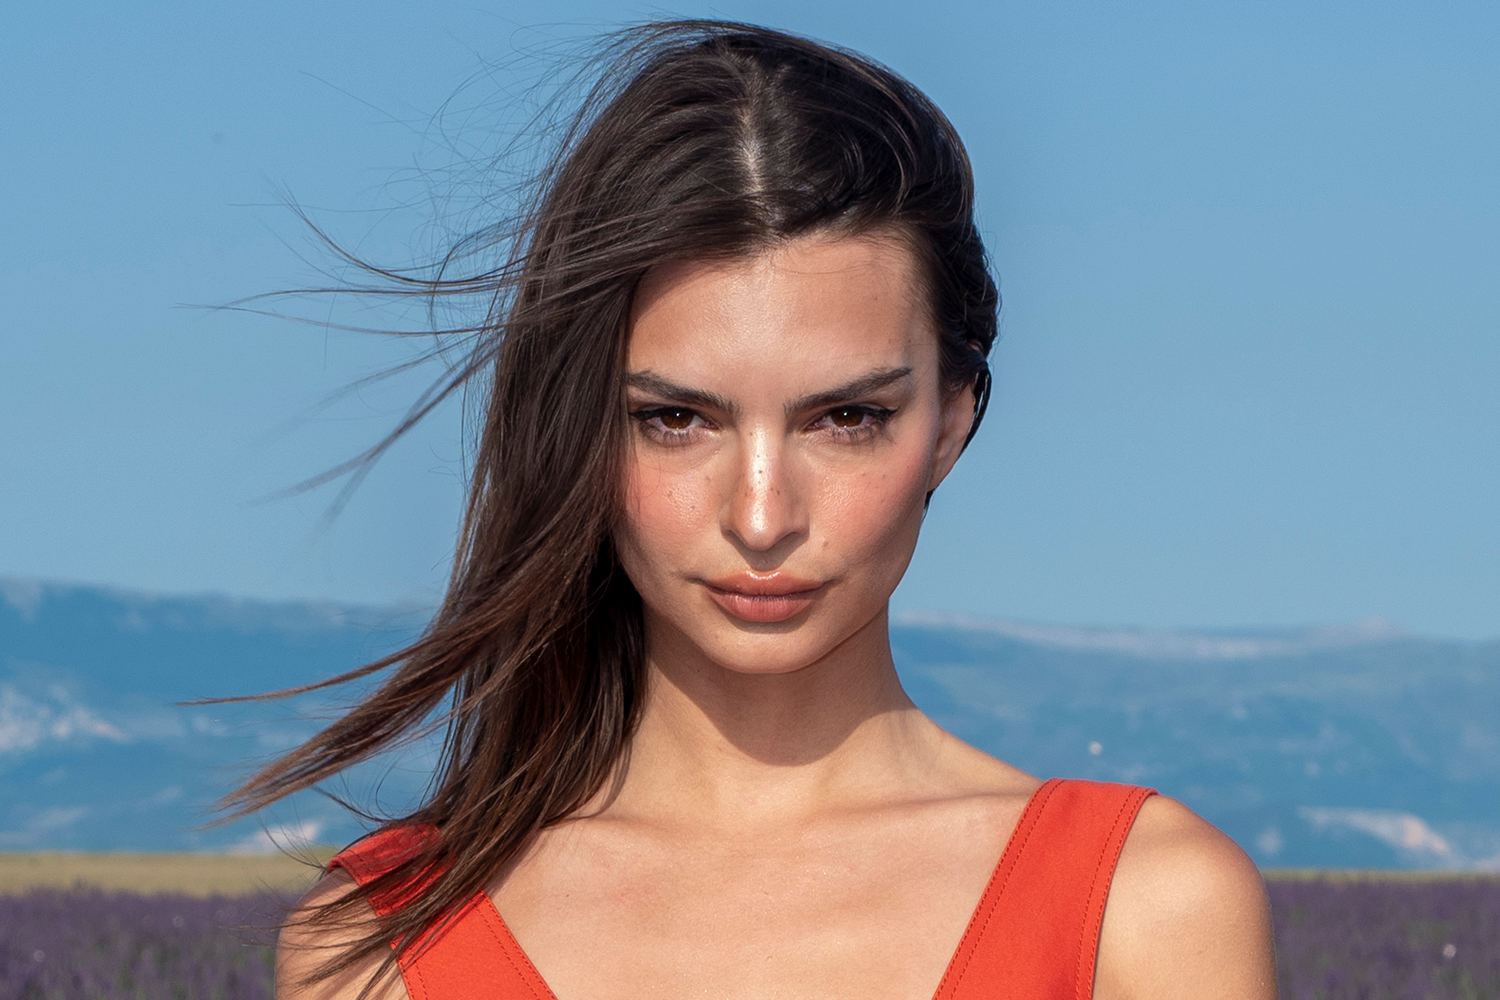 Pure Beauty Emily Ratajkowski - Emily Ratajkowski Net Worth, Pics, Wallpapers, Career and Biography